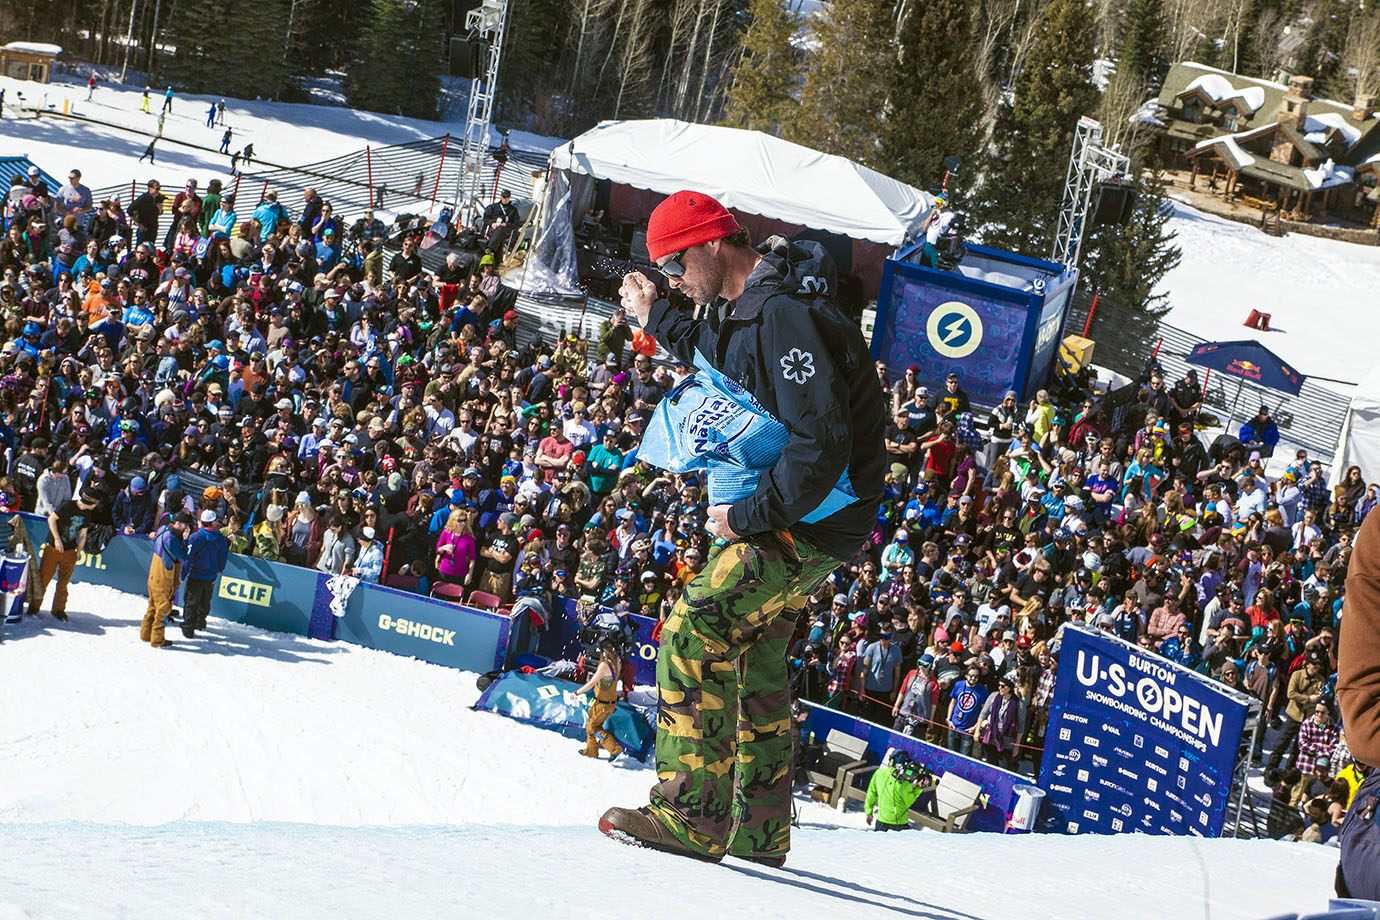 An employee of the Burton U.S. Open preps the pipe for competition, throwing coolant on the side of the walls to battle the unusually high temperatures that have become the trademark of winter this season in Colorado.